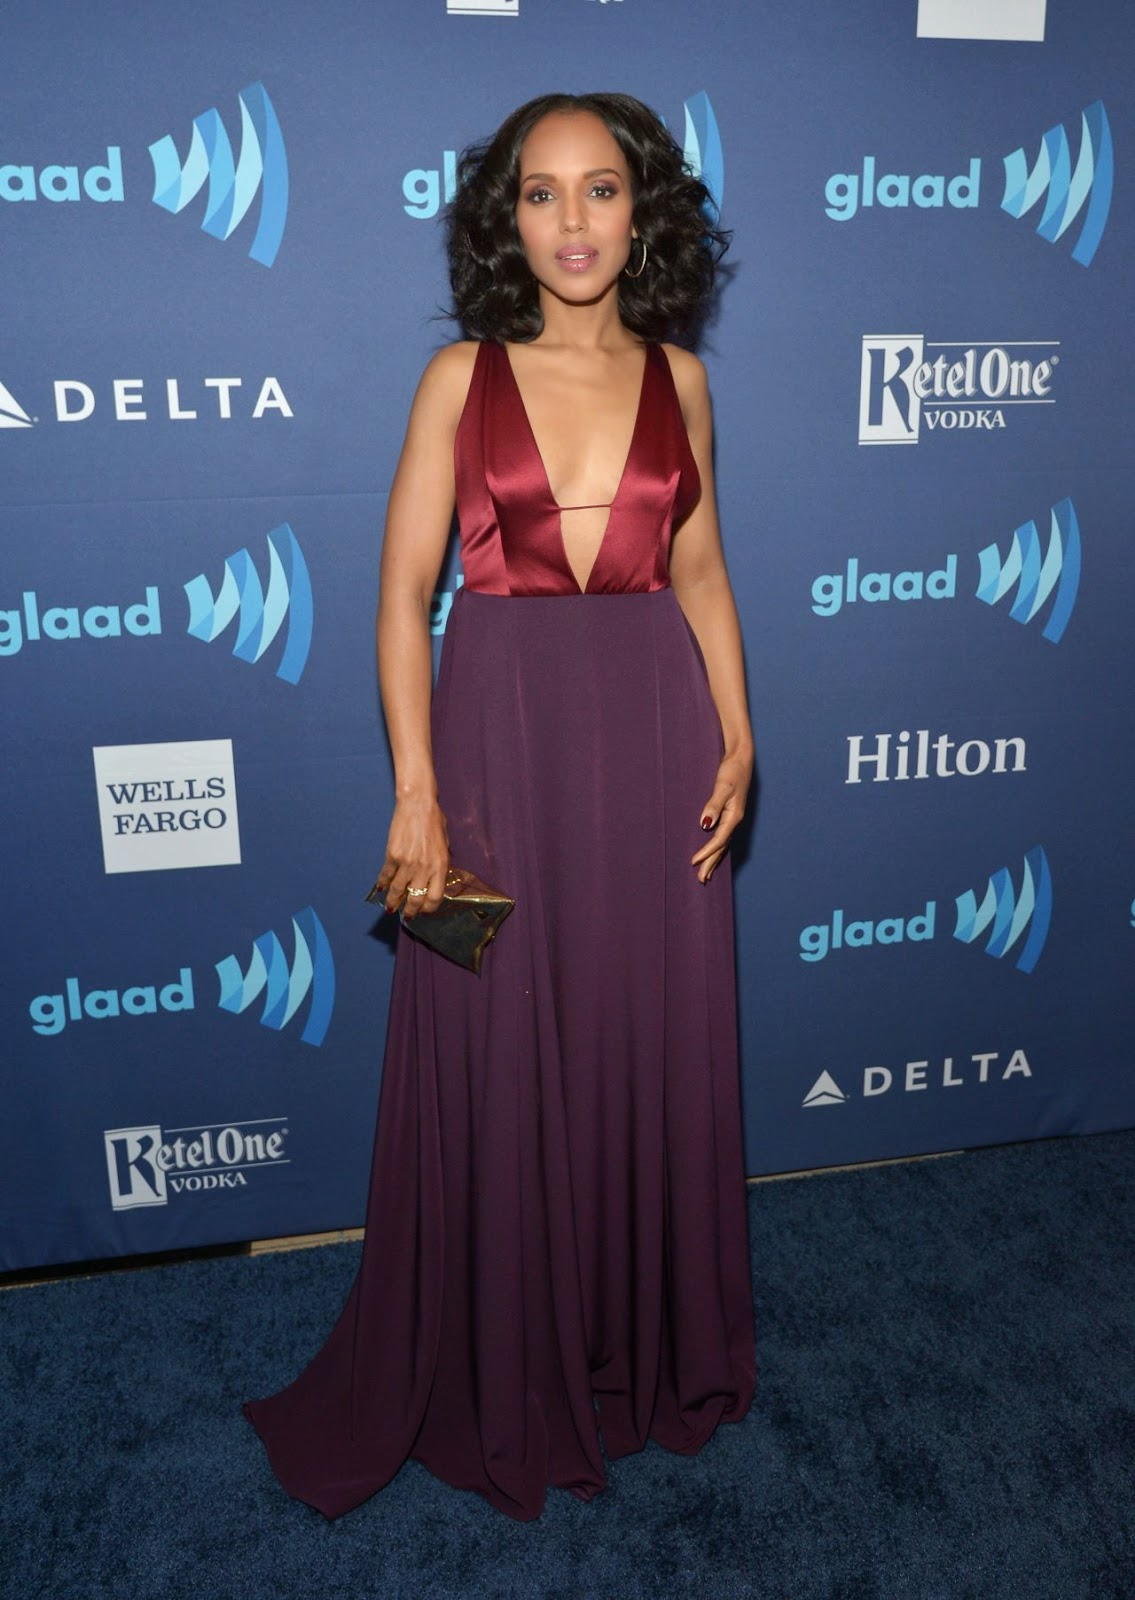 Kerry Washington in a plunging dress at the 2015 GLAAD Media Awards in Beverly Hills